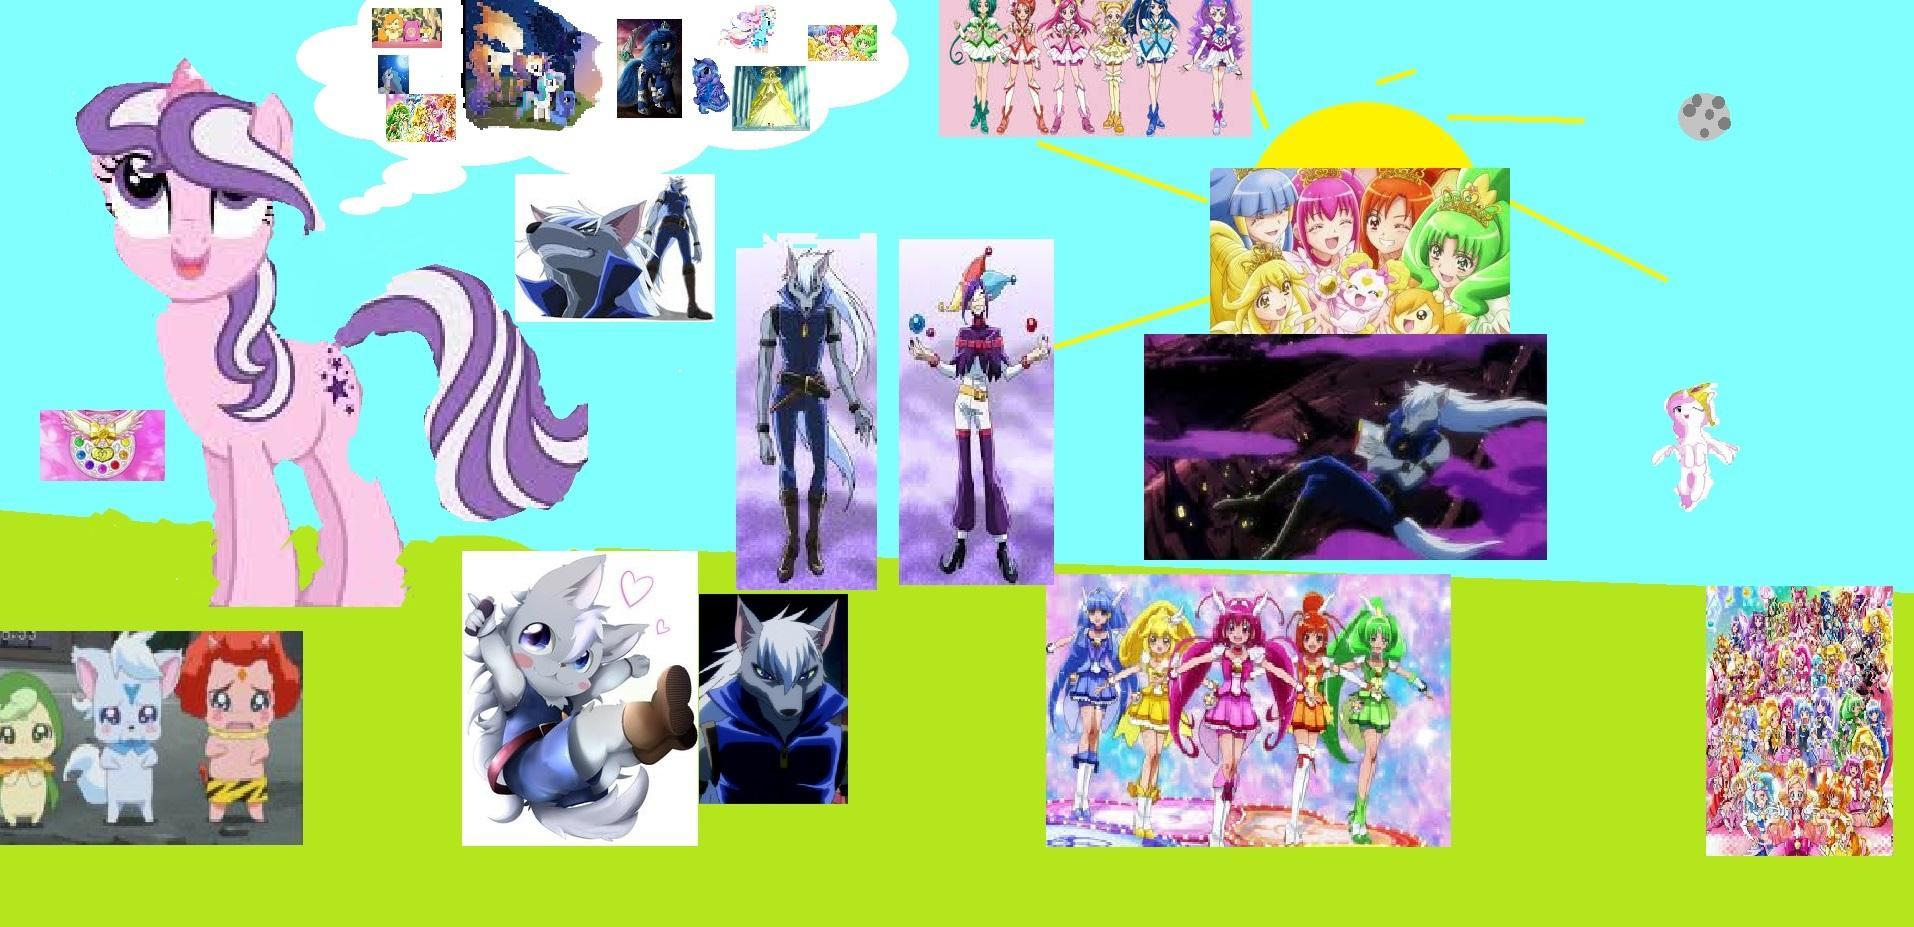 what glitter force character are you including the villians?